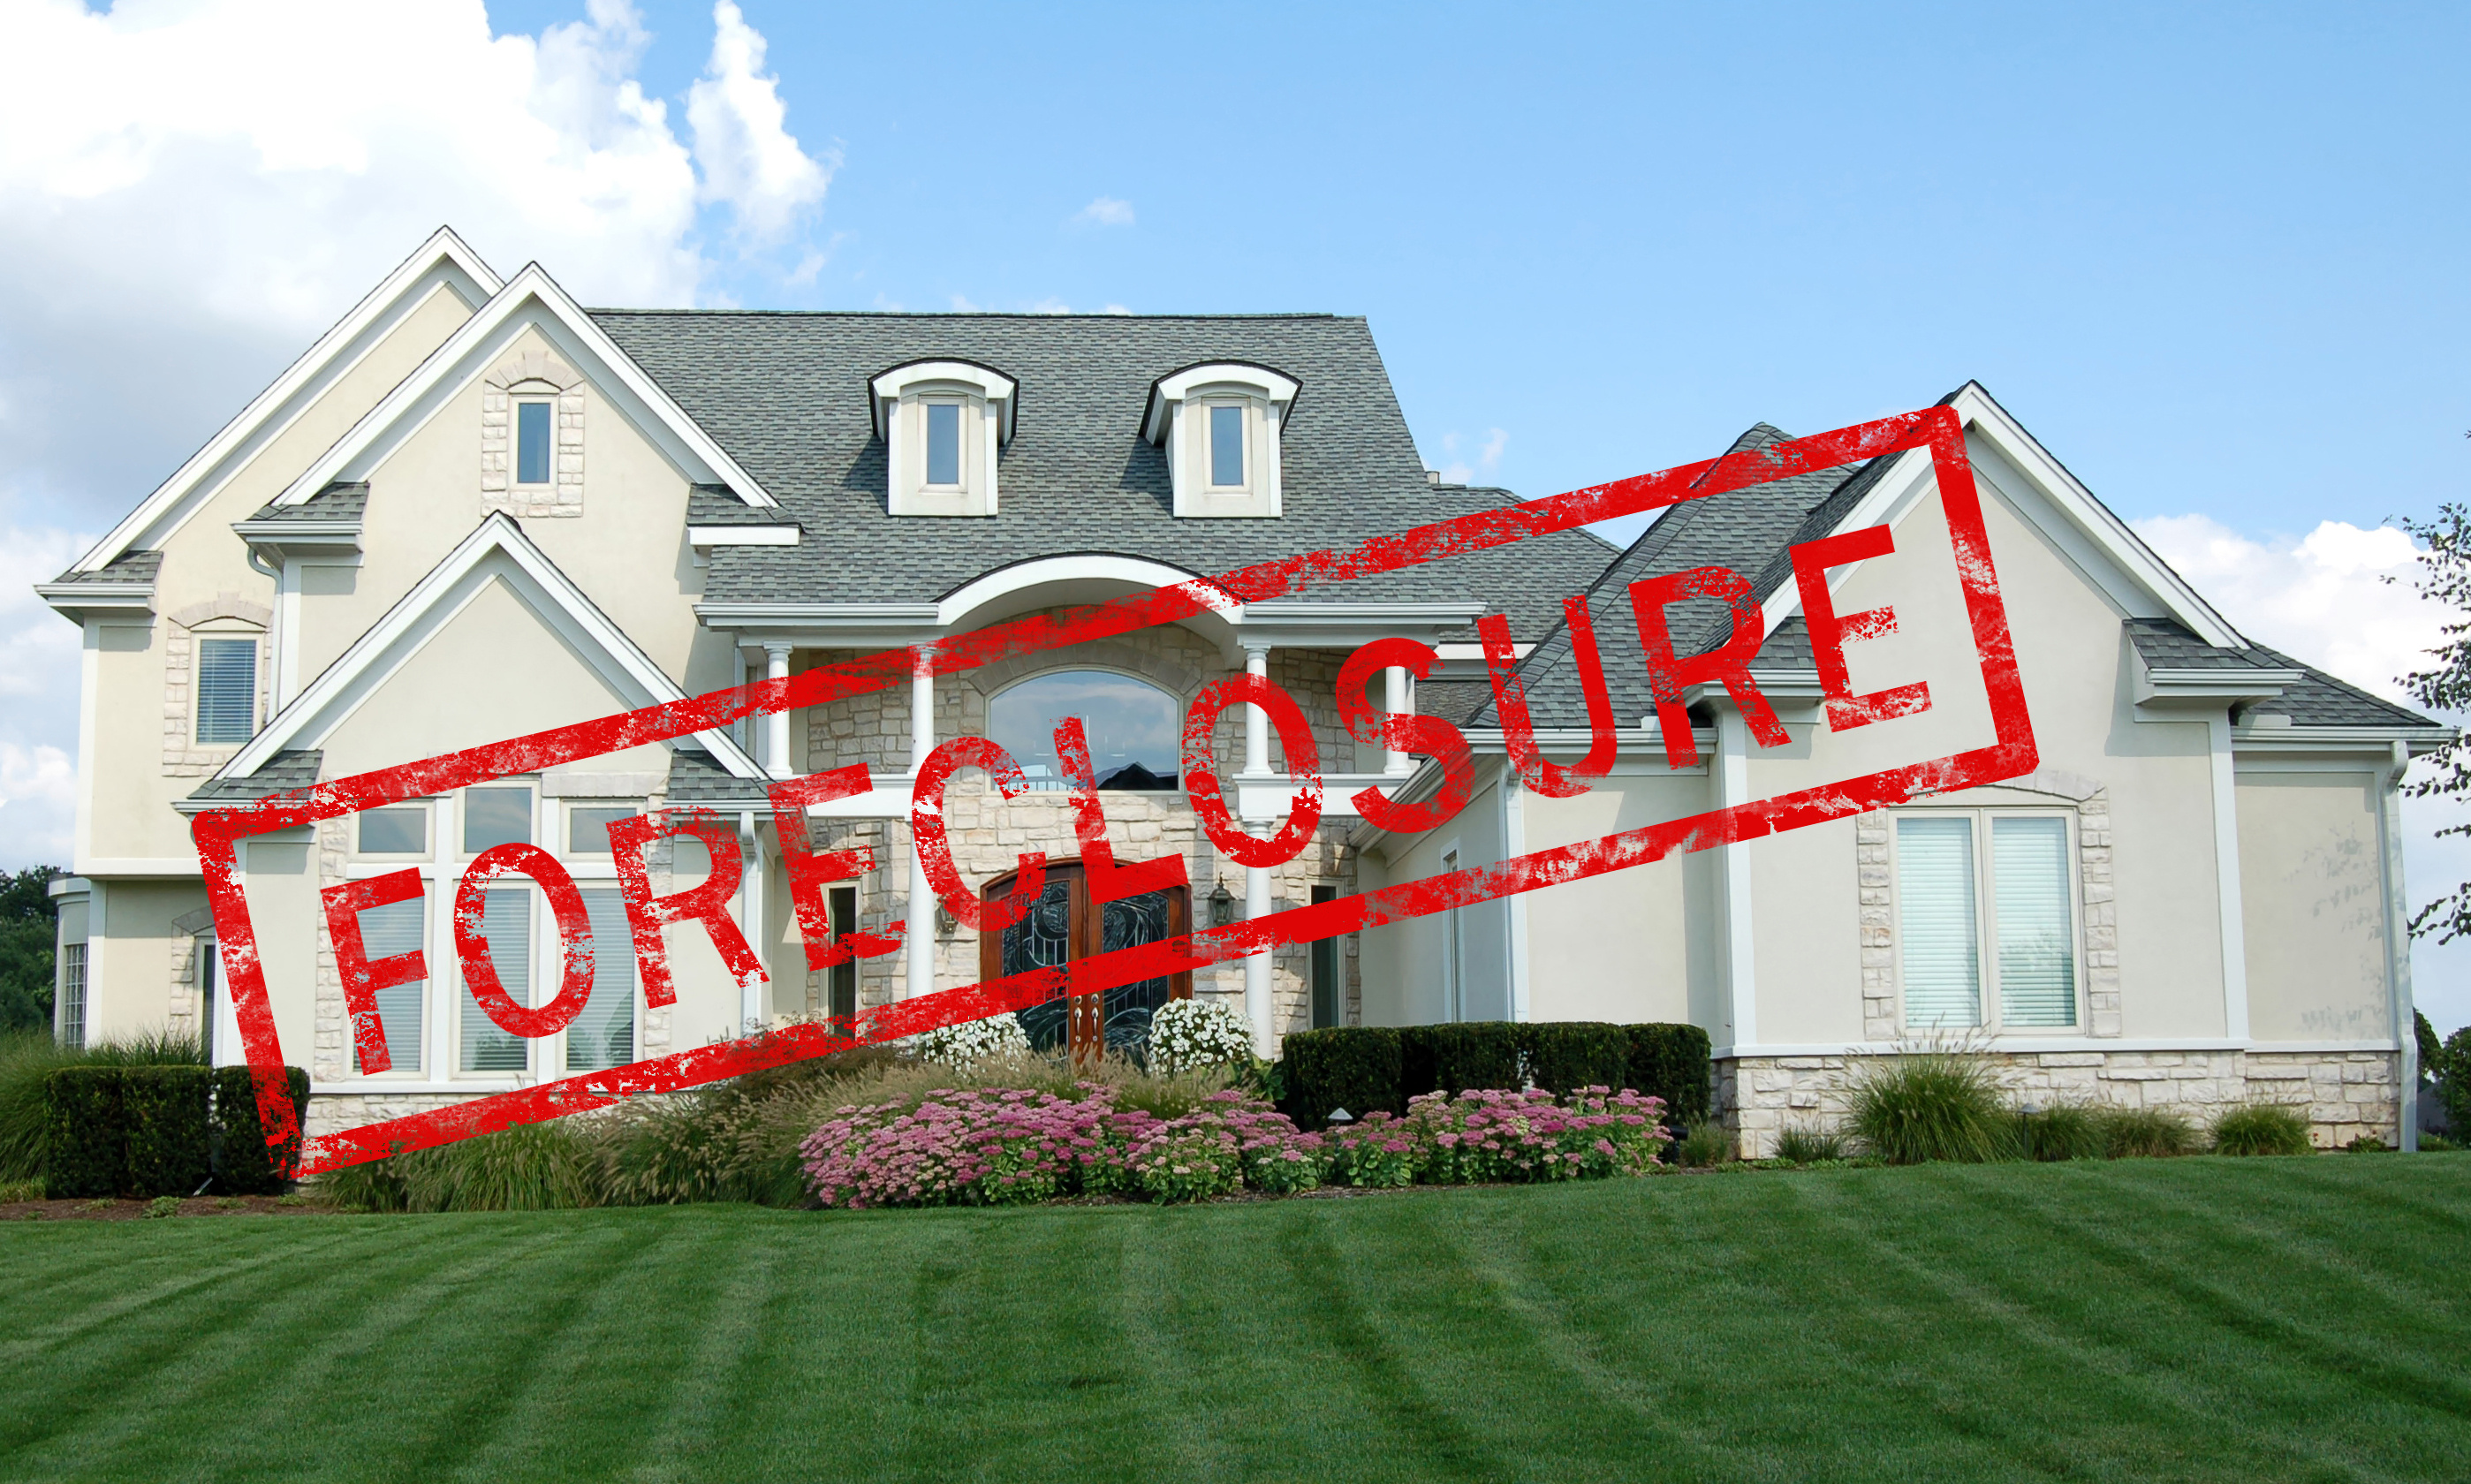 Call Moab Appraisal Inc. to discuss appraisals regarding Grand foreclosures